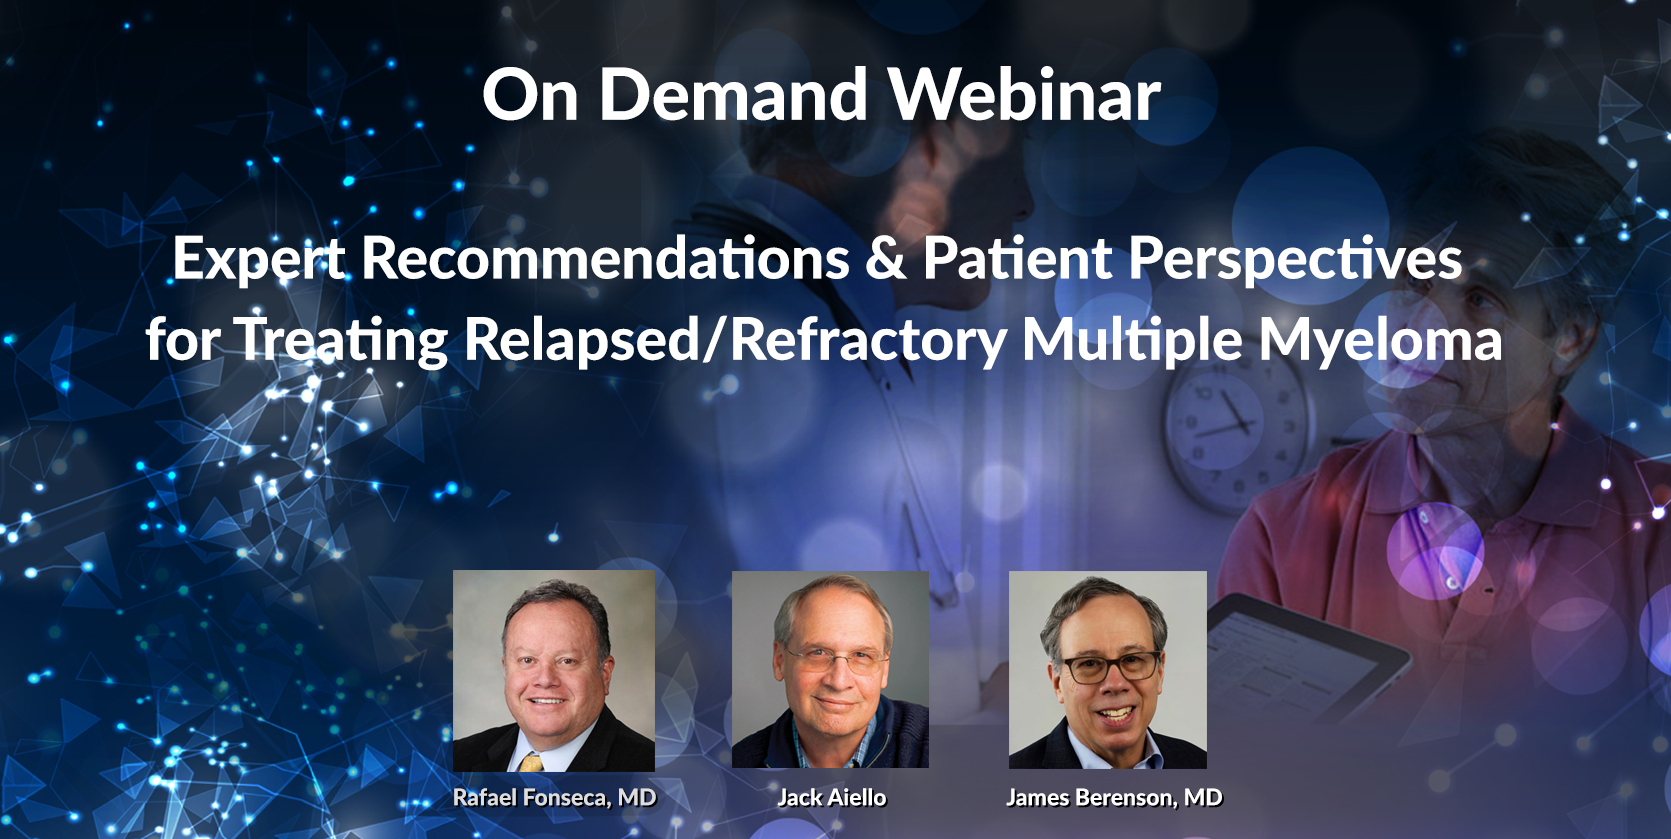 Expert Recommendations & Patient Perspectives for Treating Relapsed/Refractory Multiple Myeloma